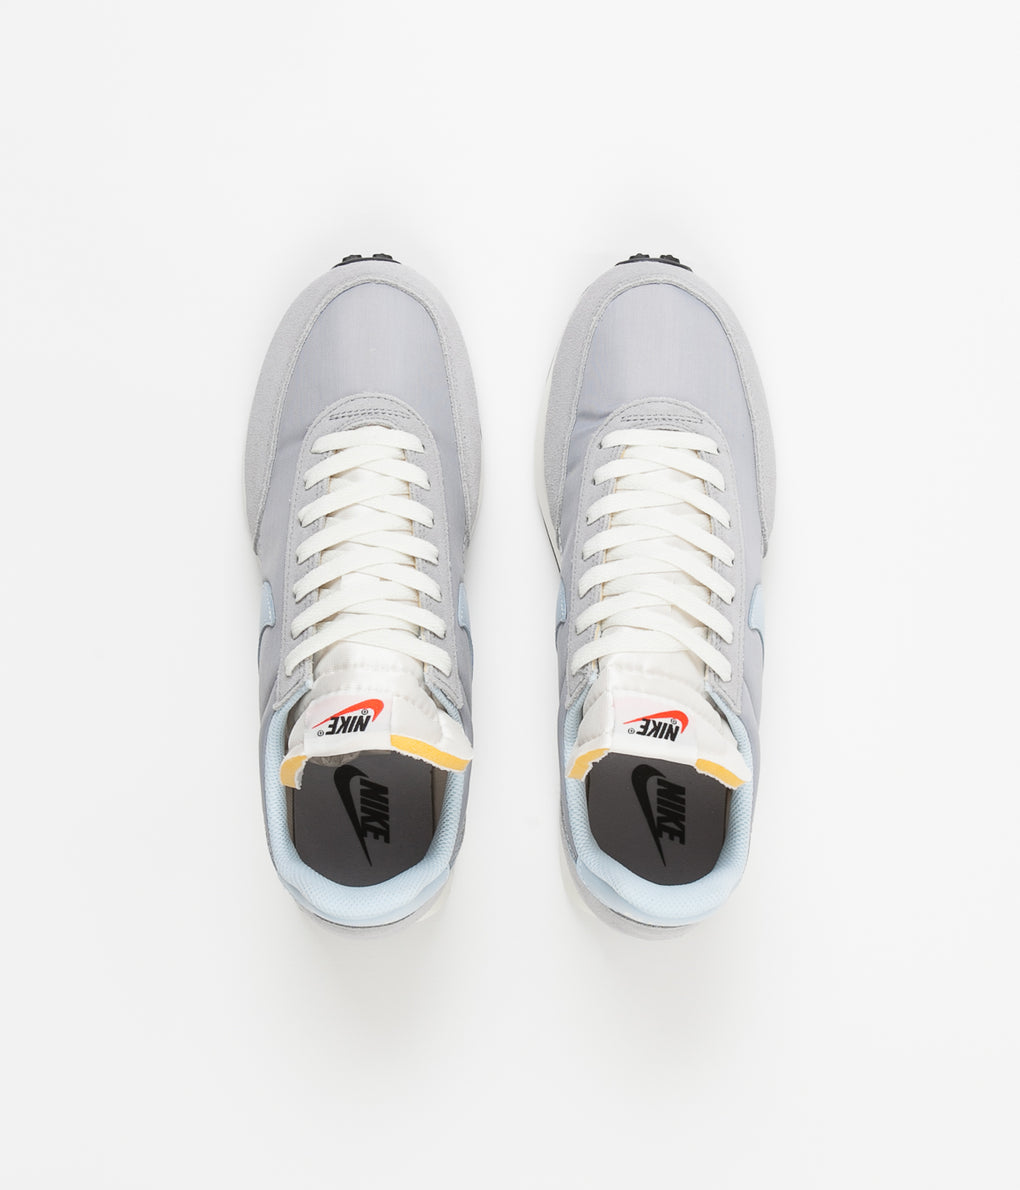 Nike Air Tailwind 79 Shoes - Wolf Grey / Antarctica - Sail - Black